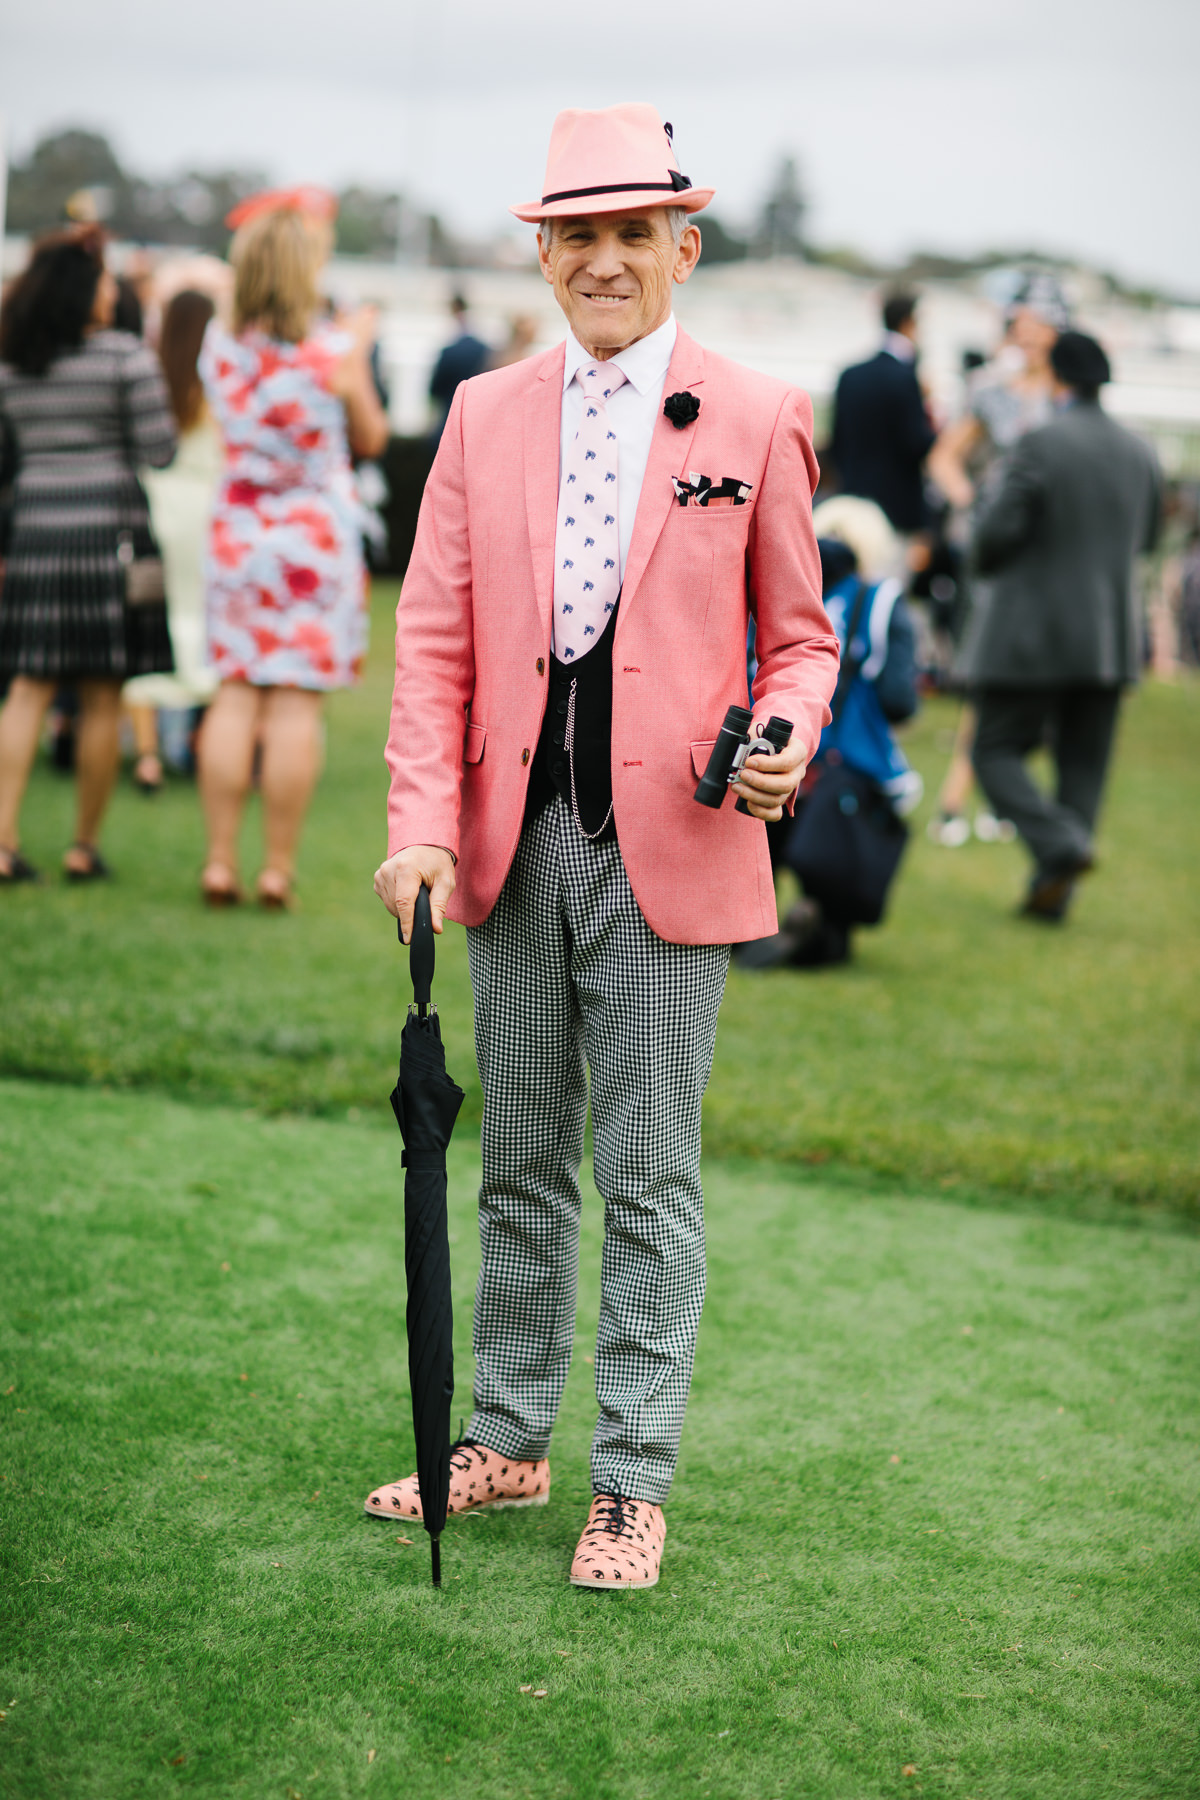 stylish gentlemen at the races